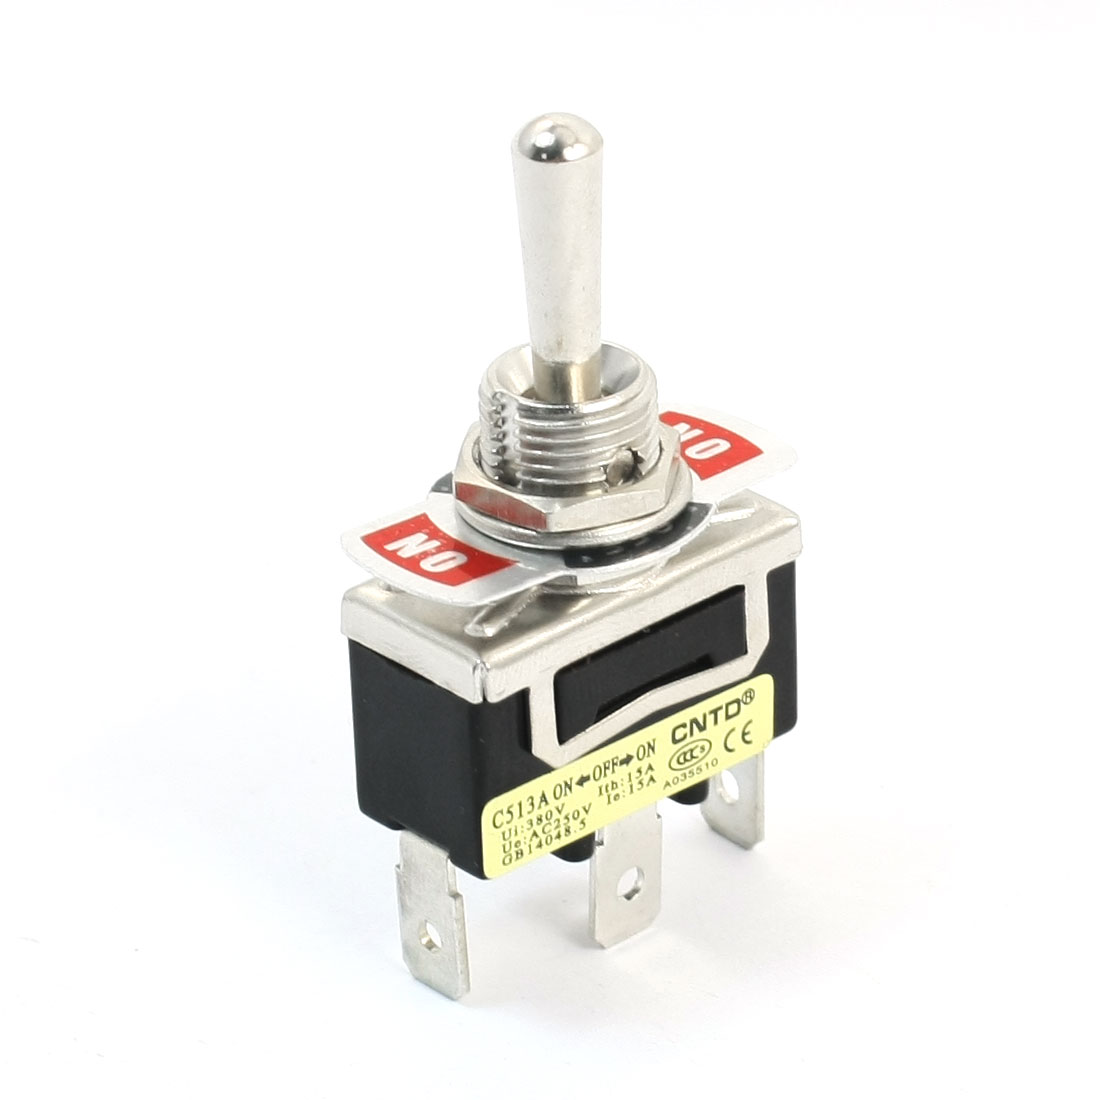 AC250V 15A ON/OFF/ON 3 Positions SPDT 12mm Mounting Dia Toggle Switch